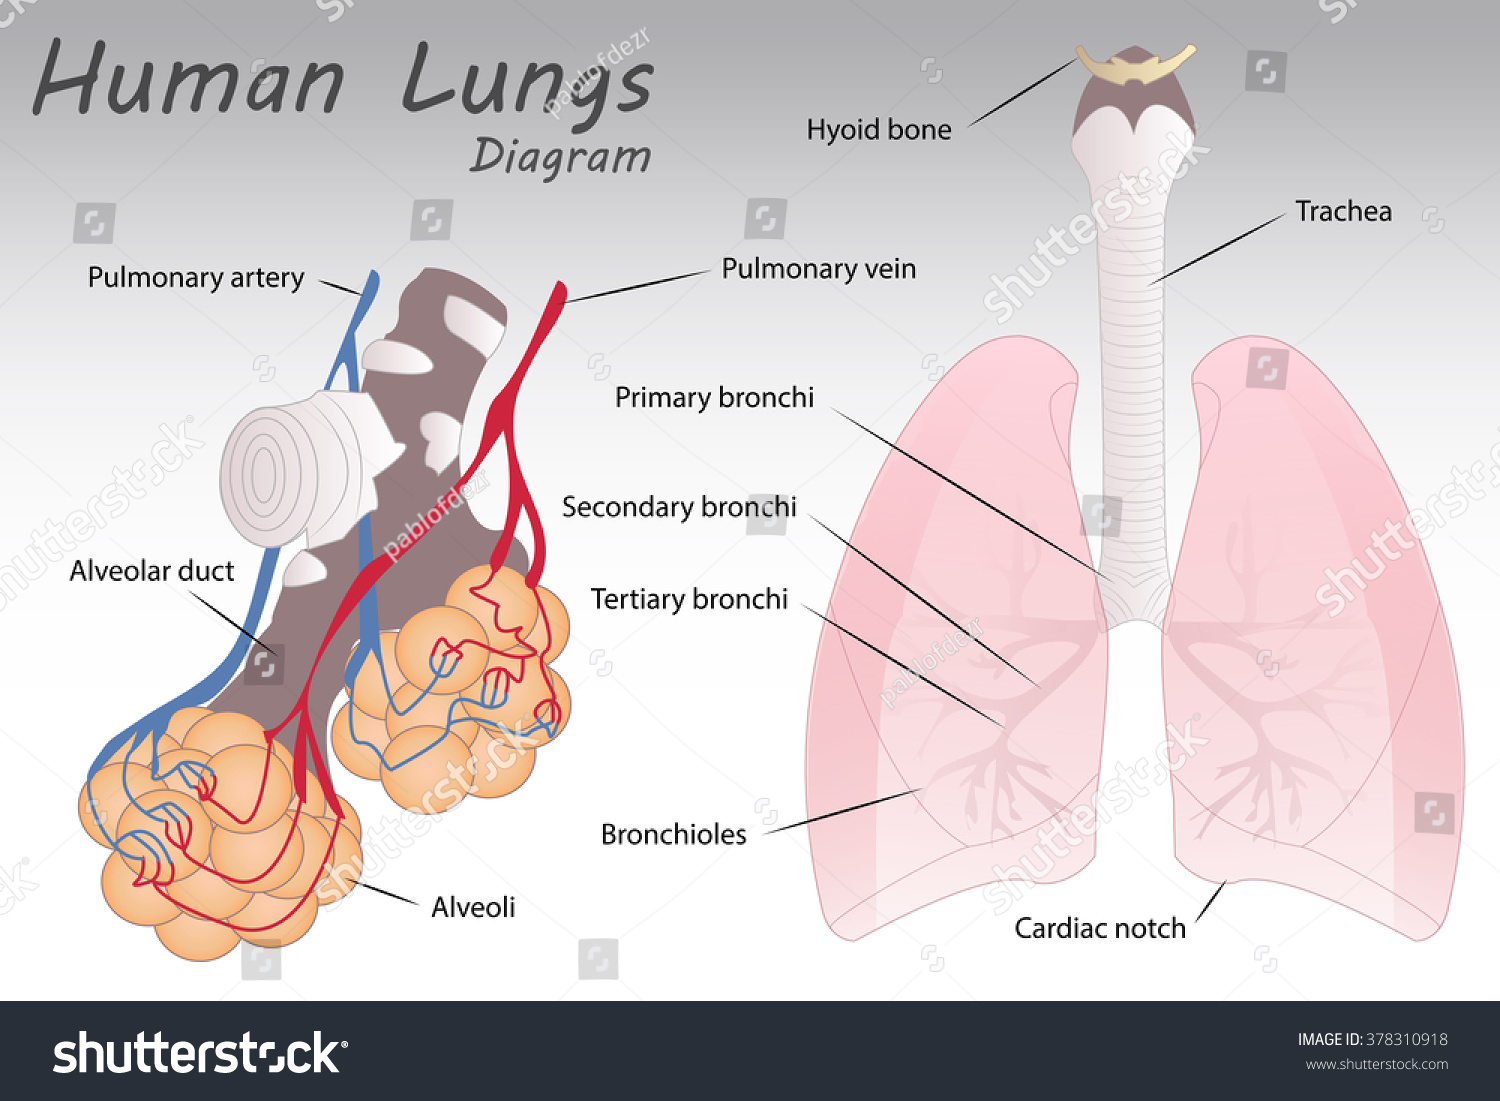 Human Lungs Diagram Stock Vector Royalty Free 378310918 Shutterstock